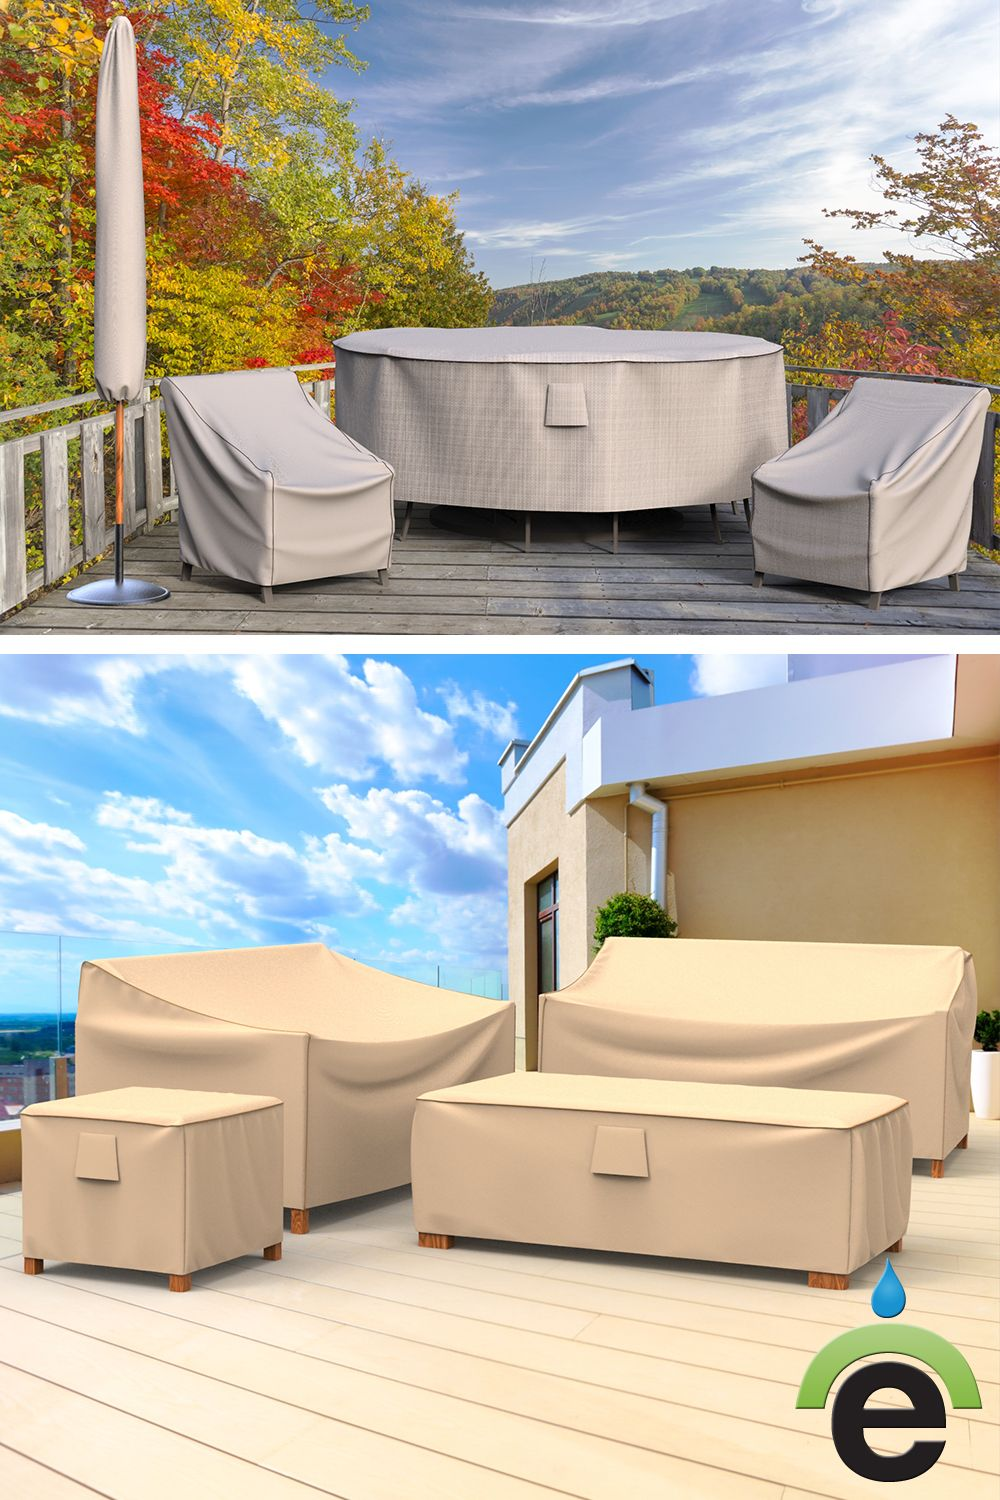 Patio Furniture Is An Essential Part Of Any Outdoor Living Space And